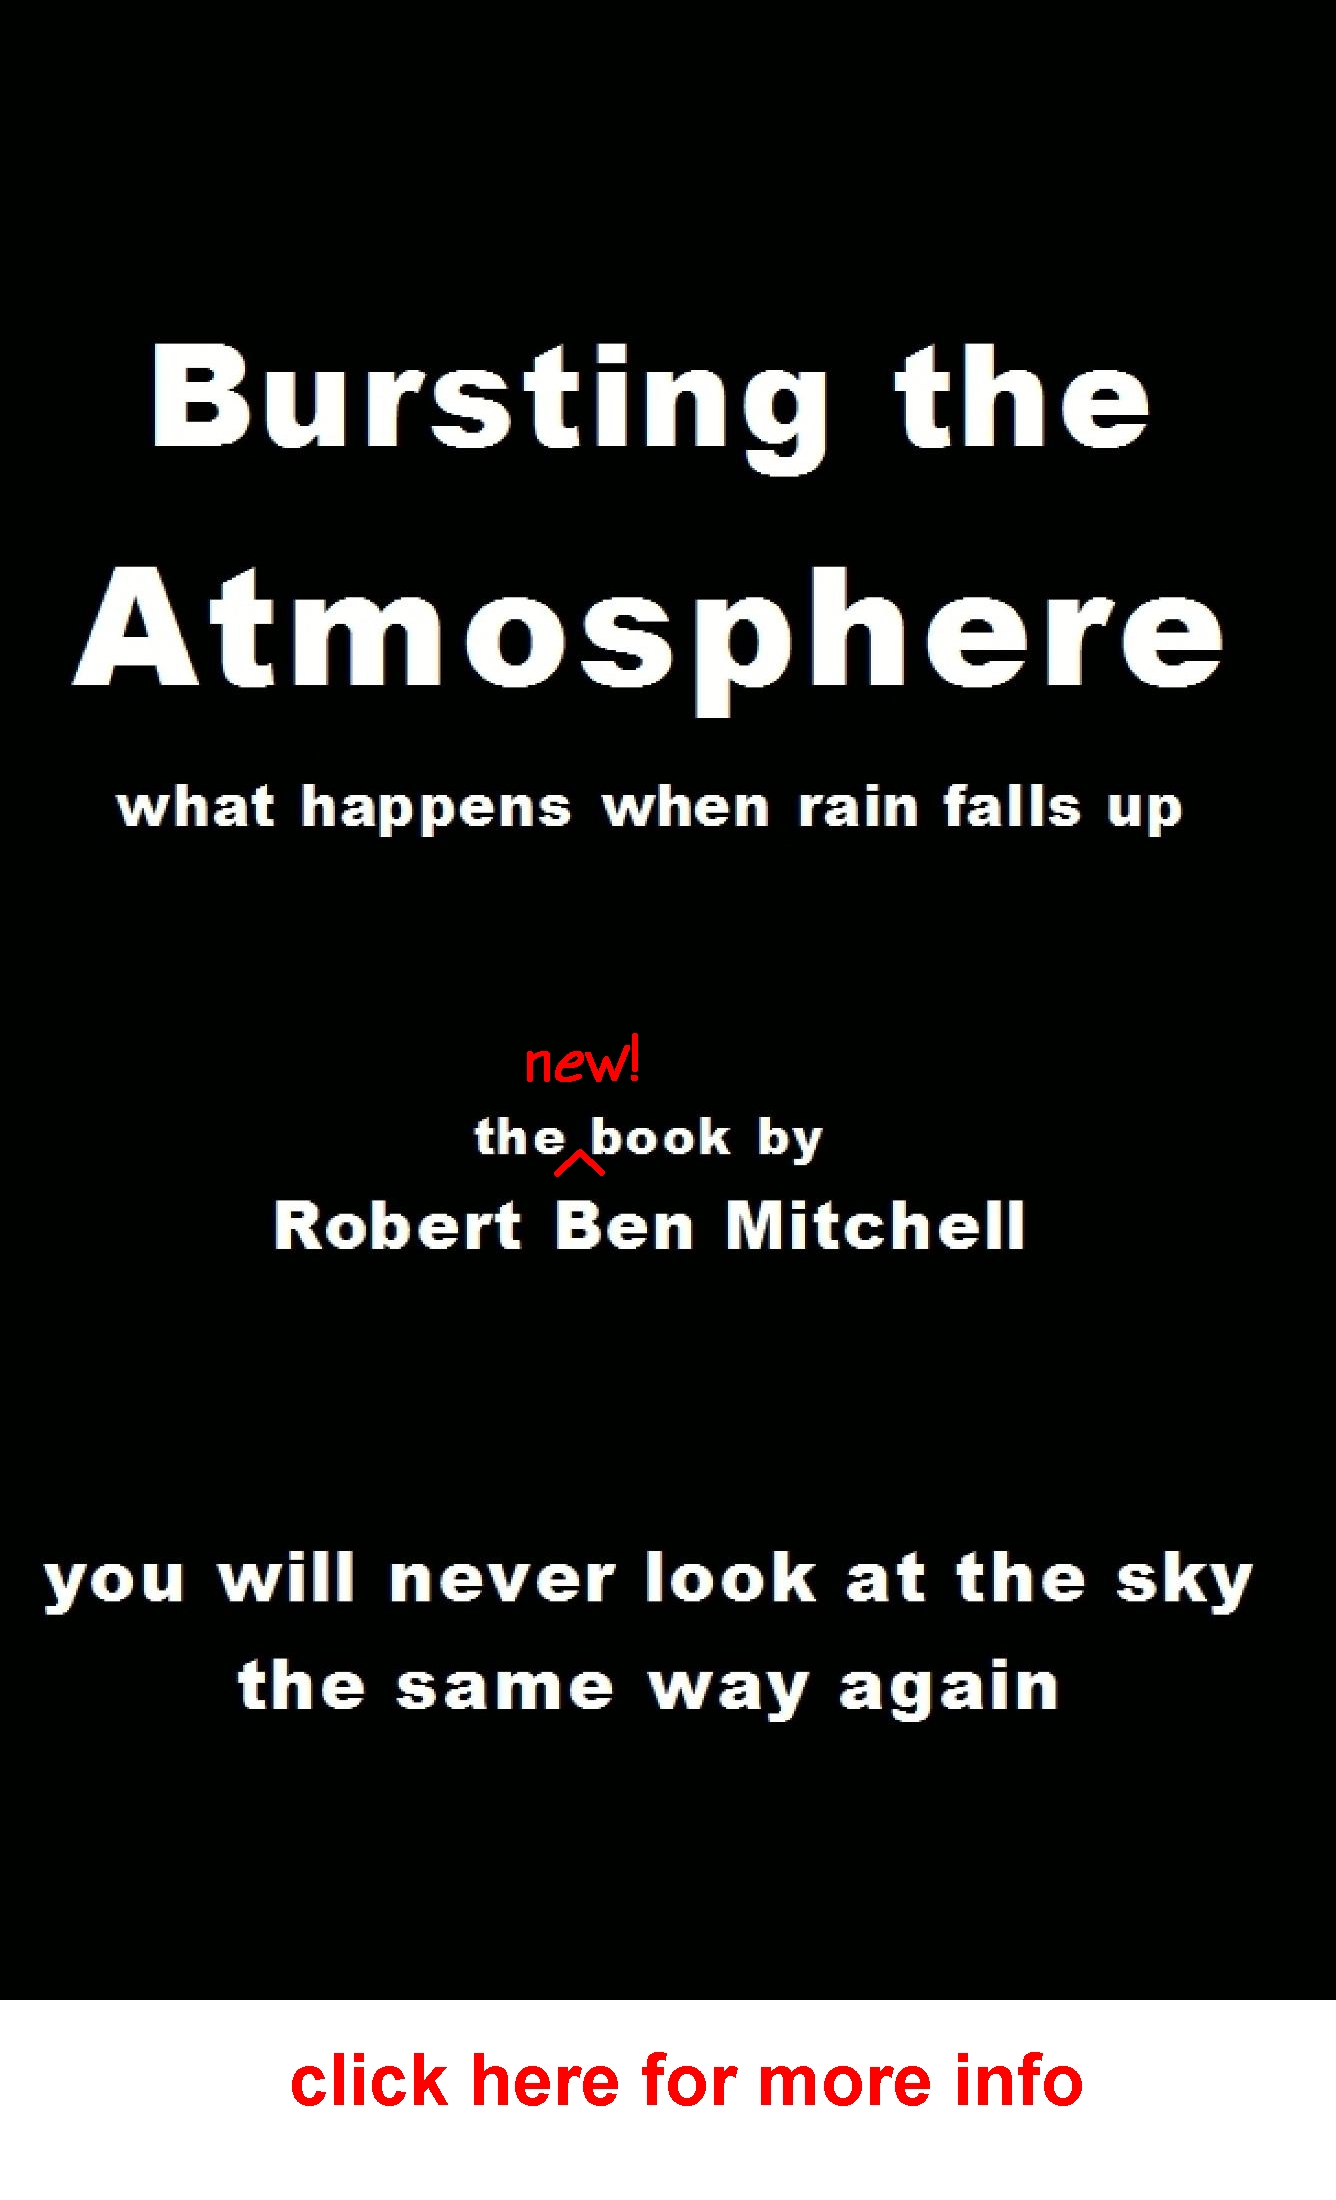 Bursting the Atmosphere - the book by Robert Ben Mitchell